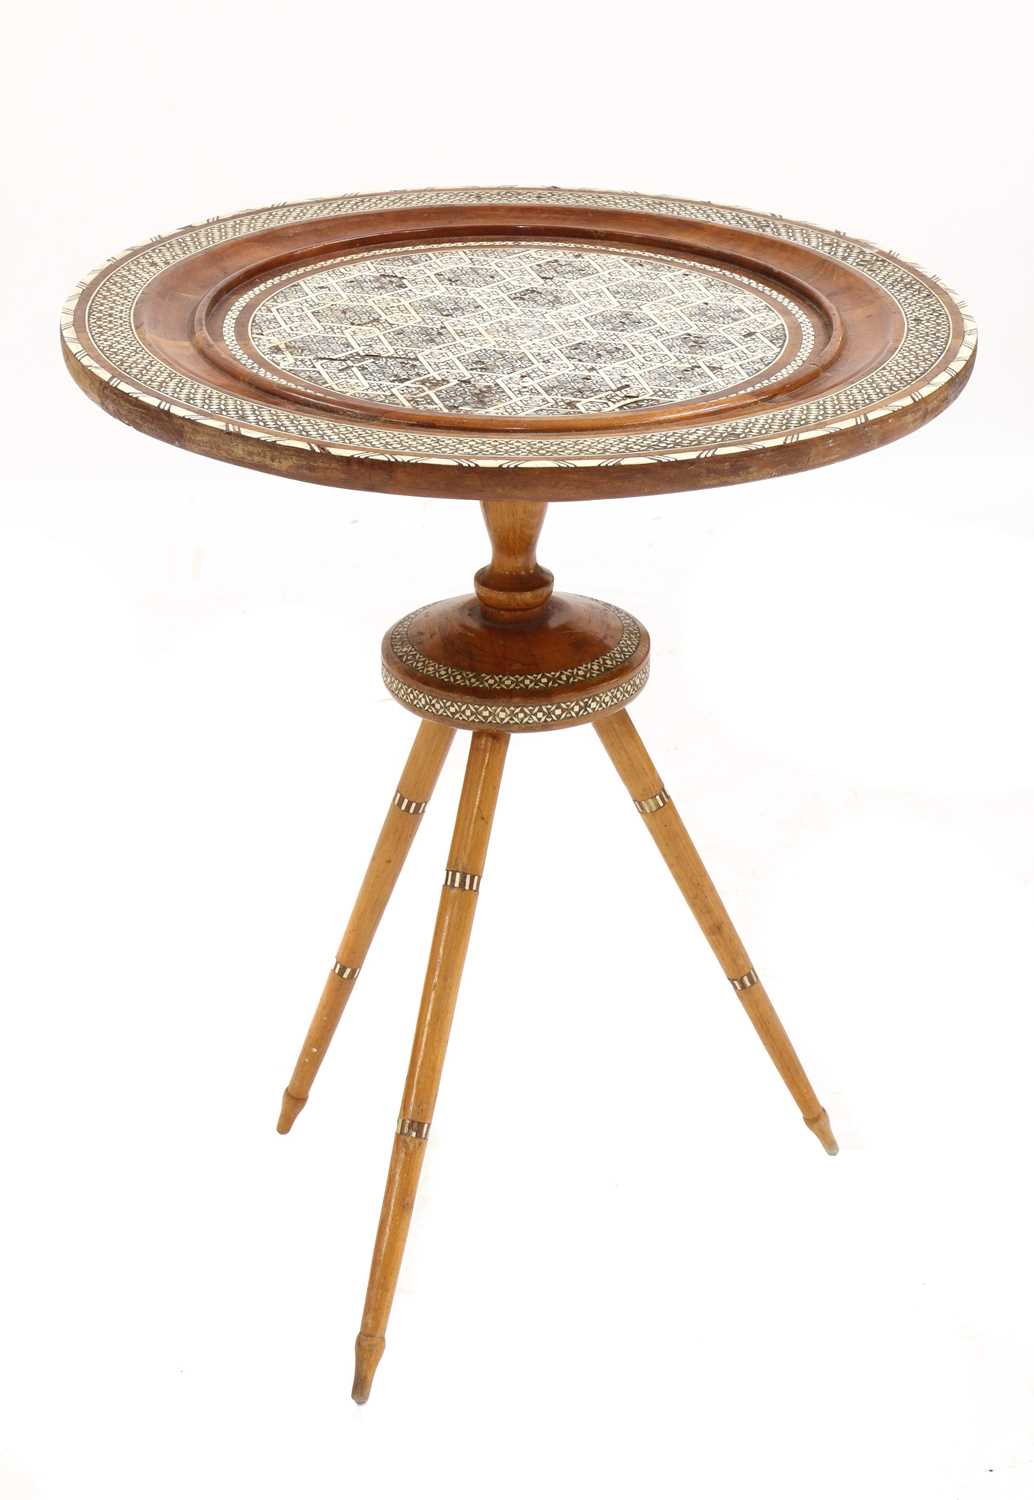 A Syrian inlaid occasional table, - Image 4 of 5